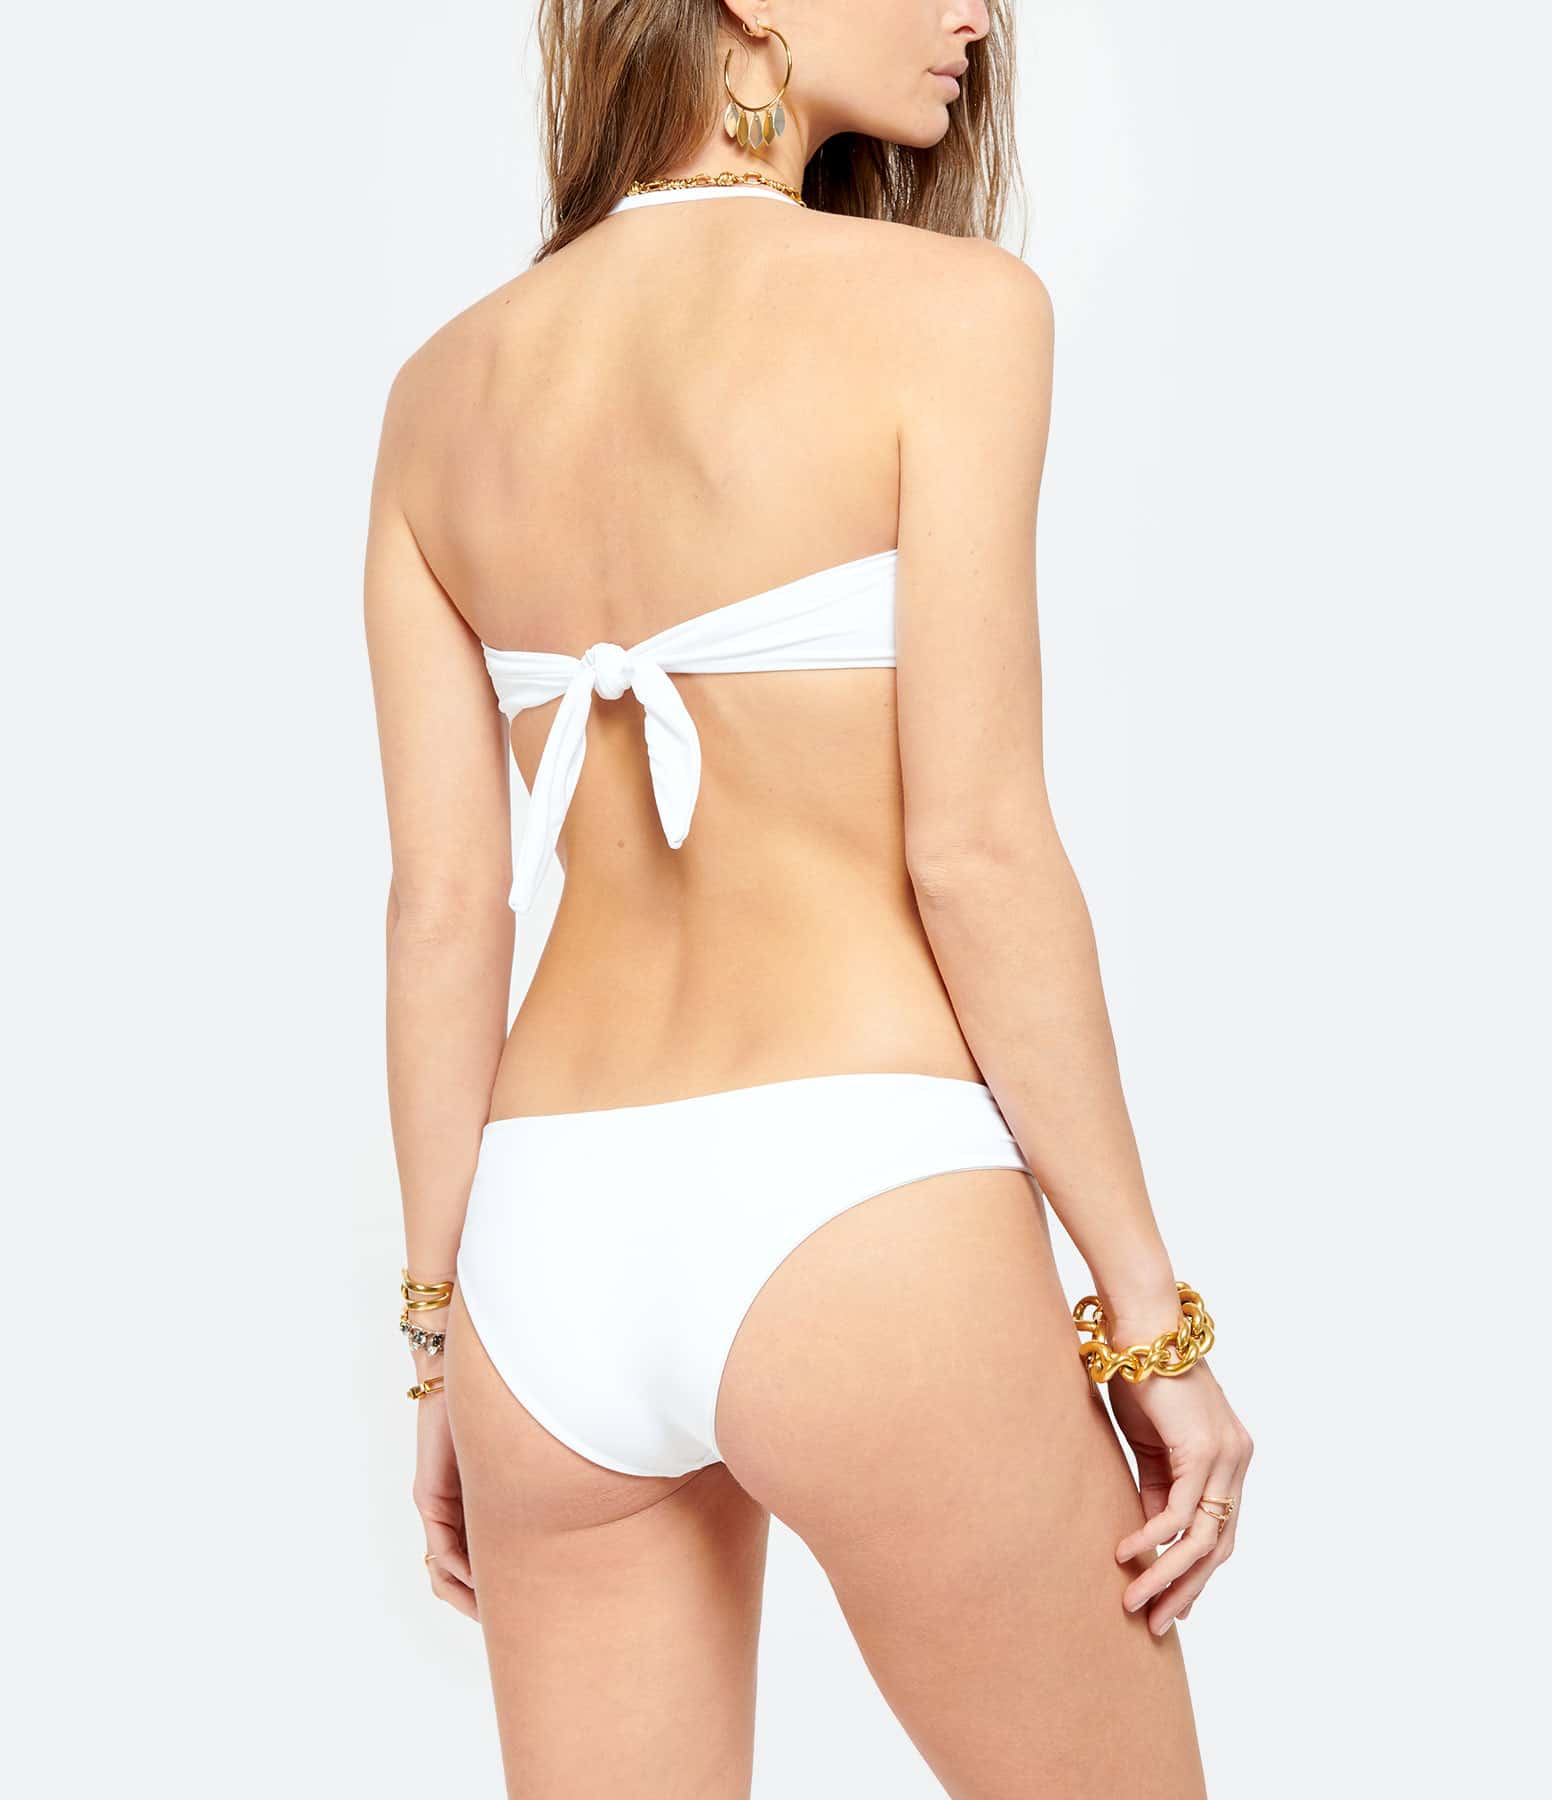 CALARENA - Haut de Maillot de Bain Fugue Blanc Lamé Doré, Collection Escapade d'Été